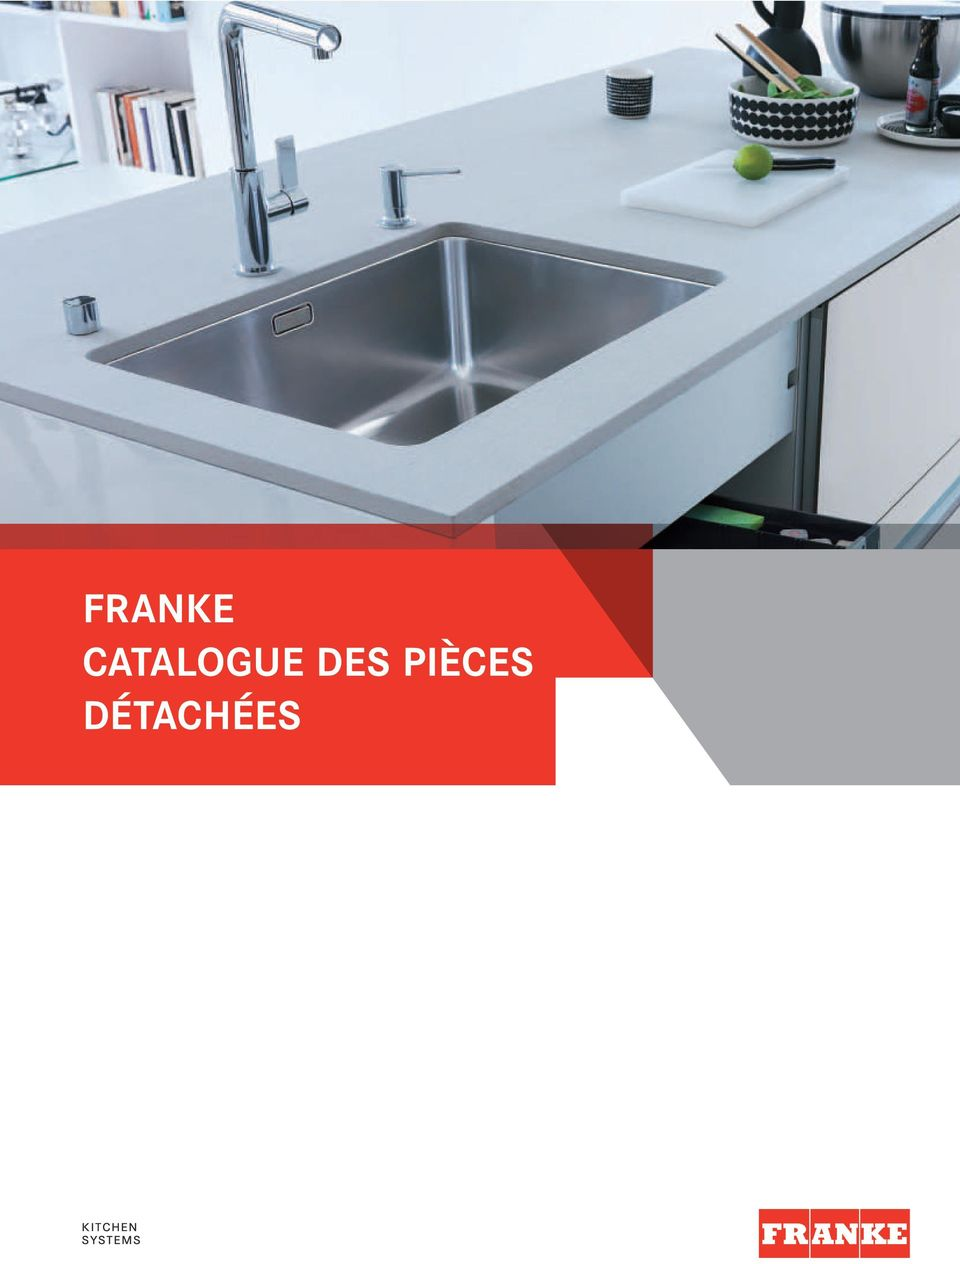 Franke catalogue des pi ces d tach es pdf - Pieces detachees evier franke ...